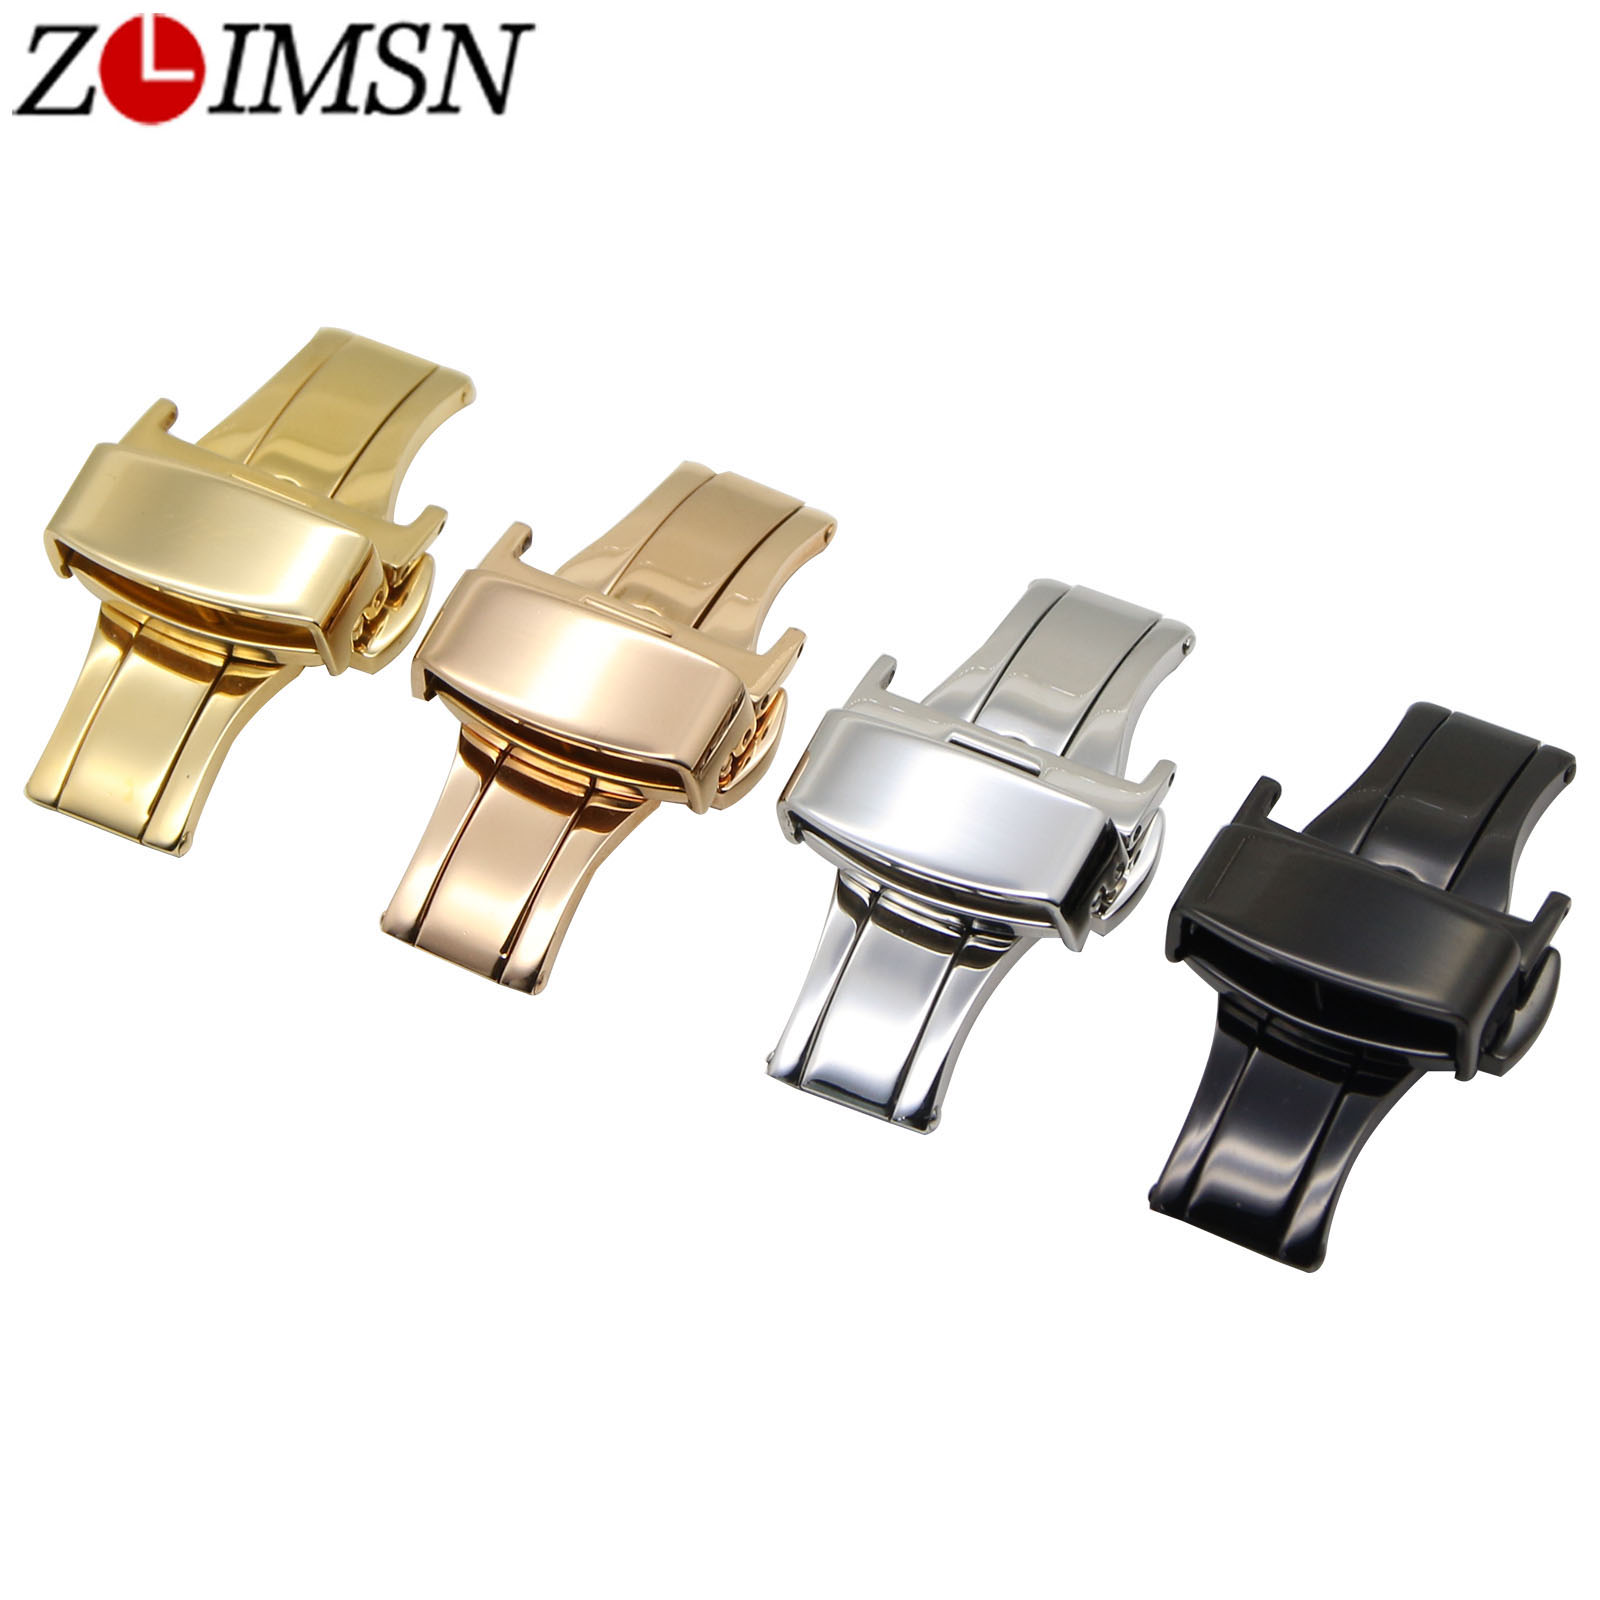 ZLIMSN 316L Stainless Steel Double Watchbands Push Button Butterfly Deployment Clasp Watch Bands Replacement Relojes Hombre 2017 zlimsn 20mm double push button deployment clasp silver gold black rose gold stainless steel watch metal buckle relojes hombre